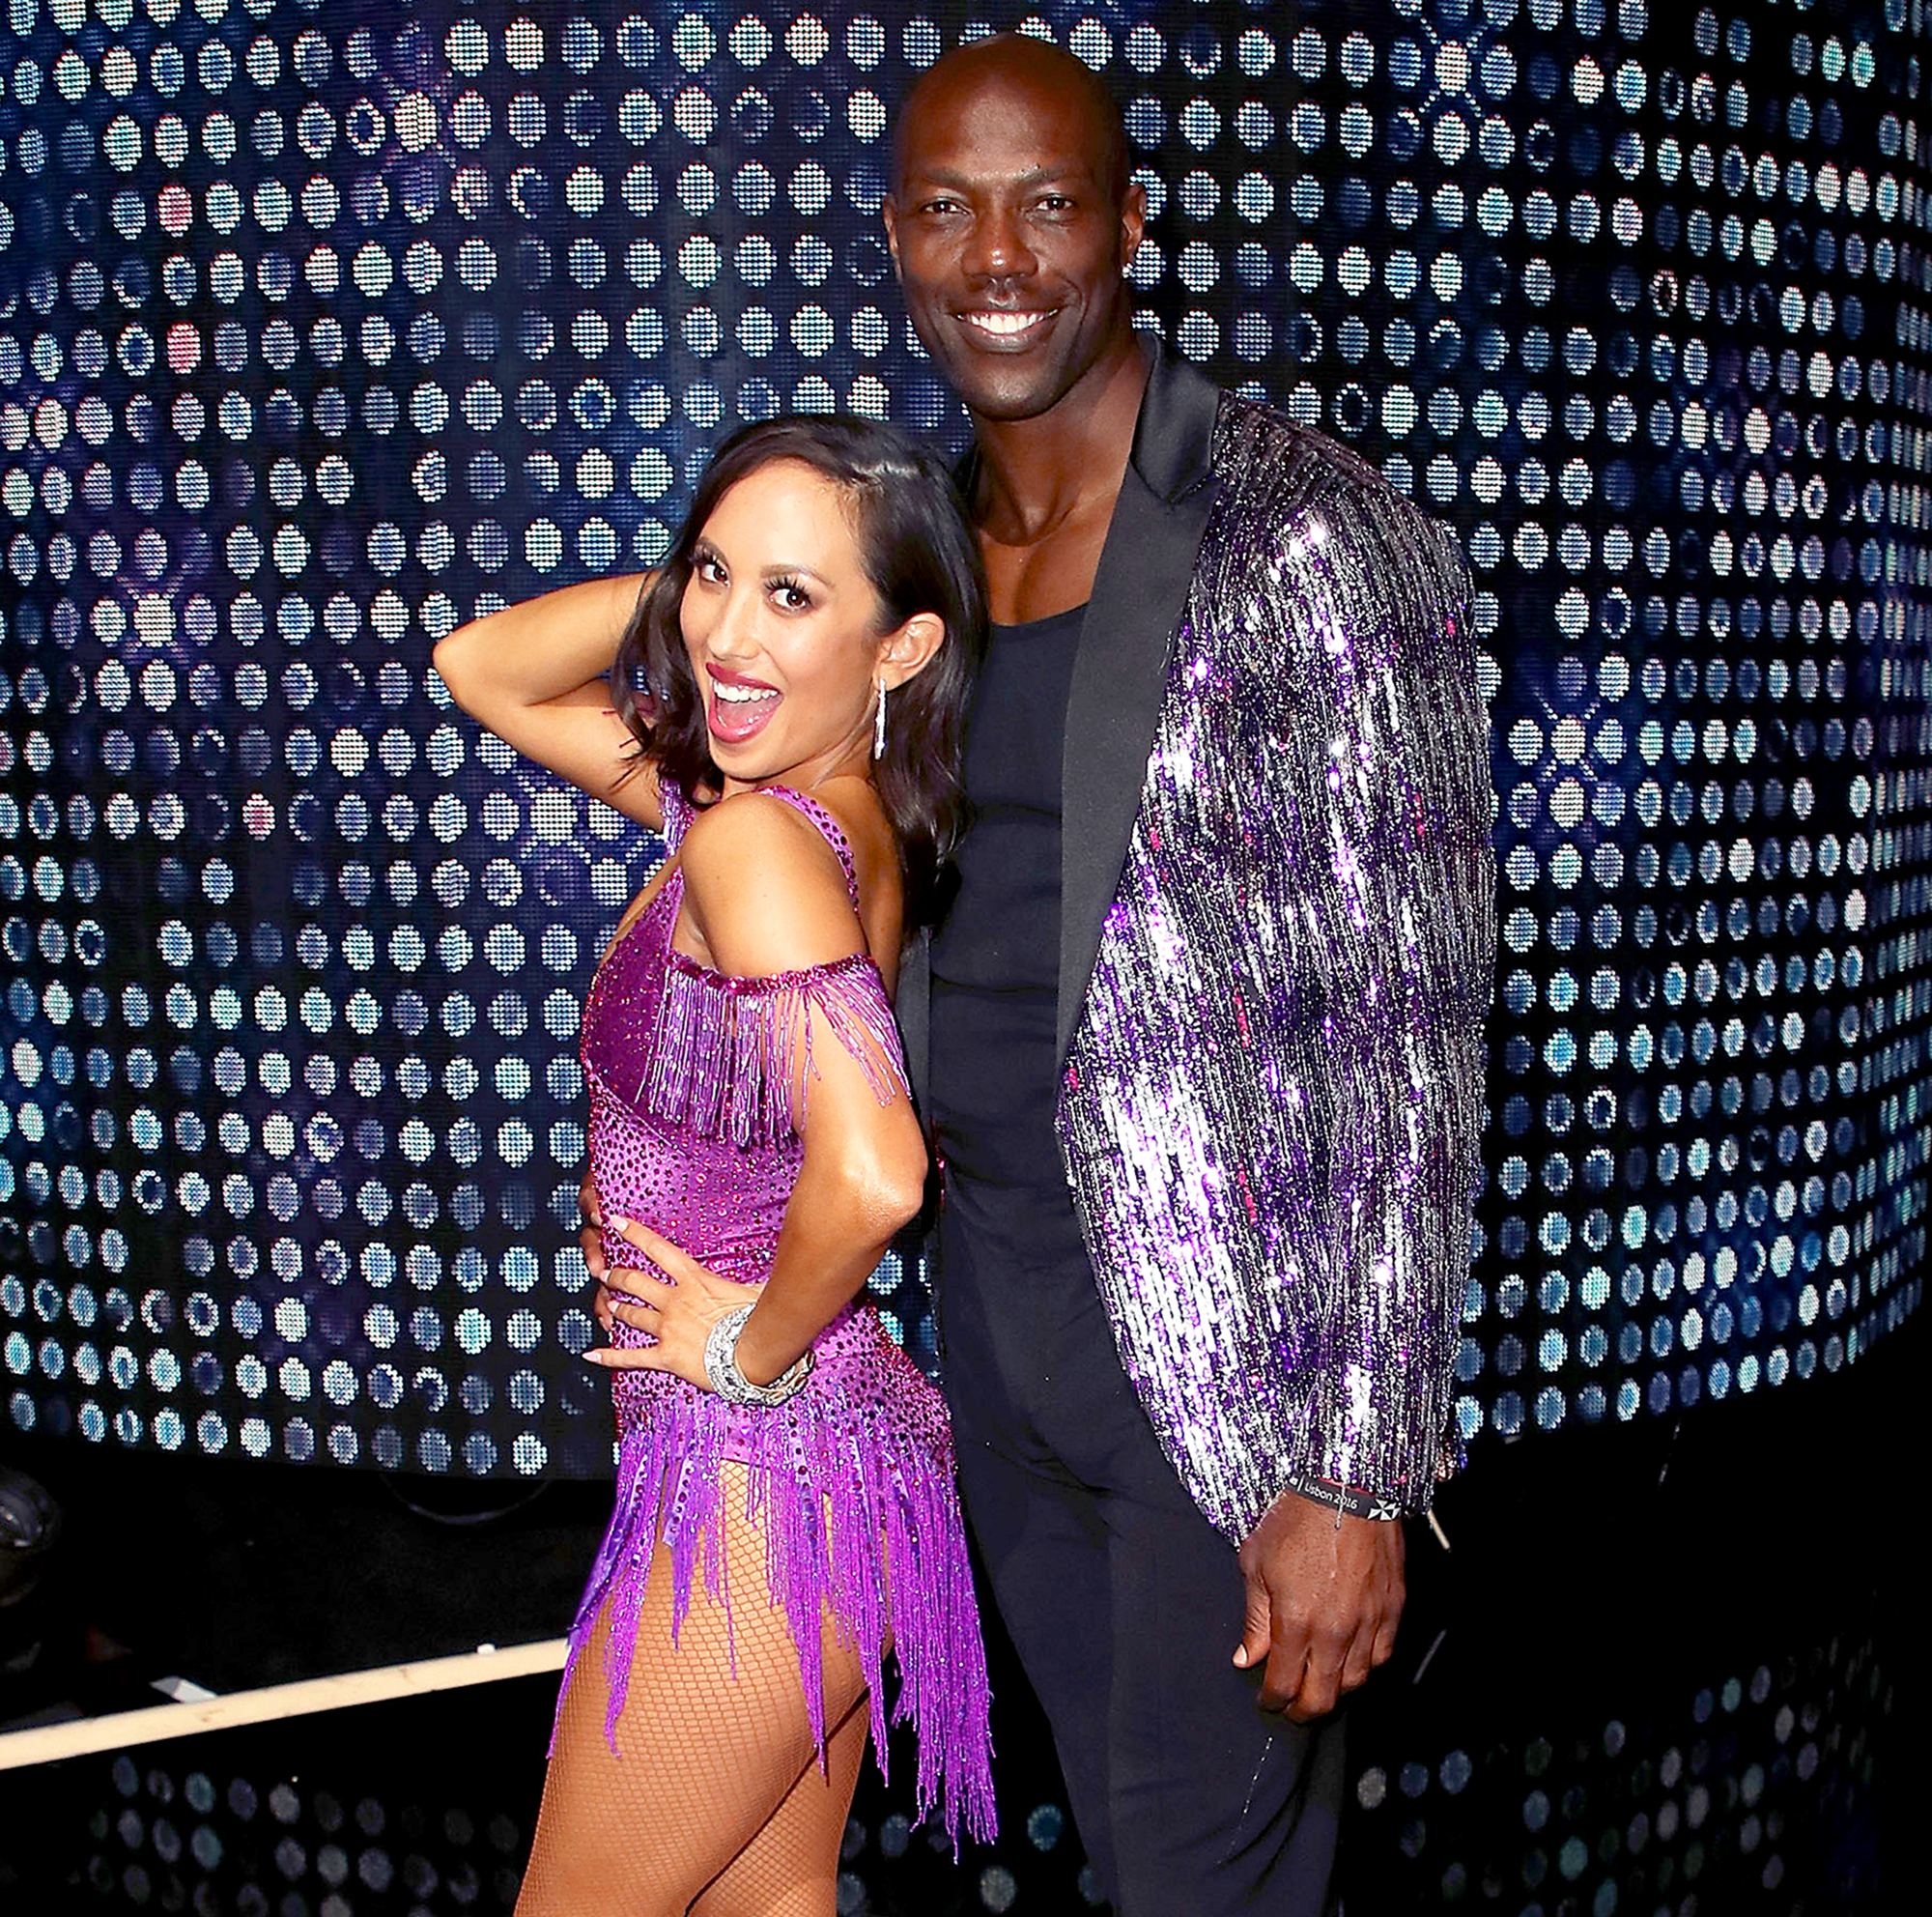 Dancing with the stars partners hookup